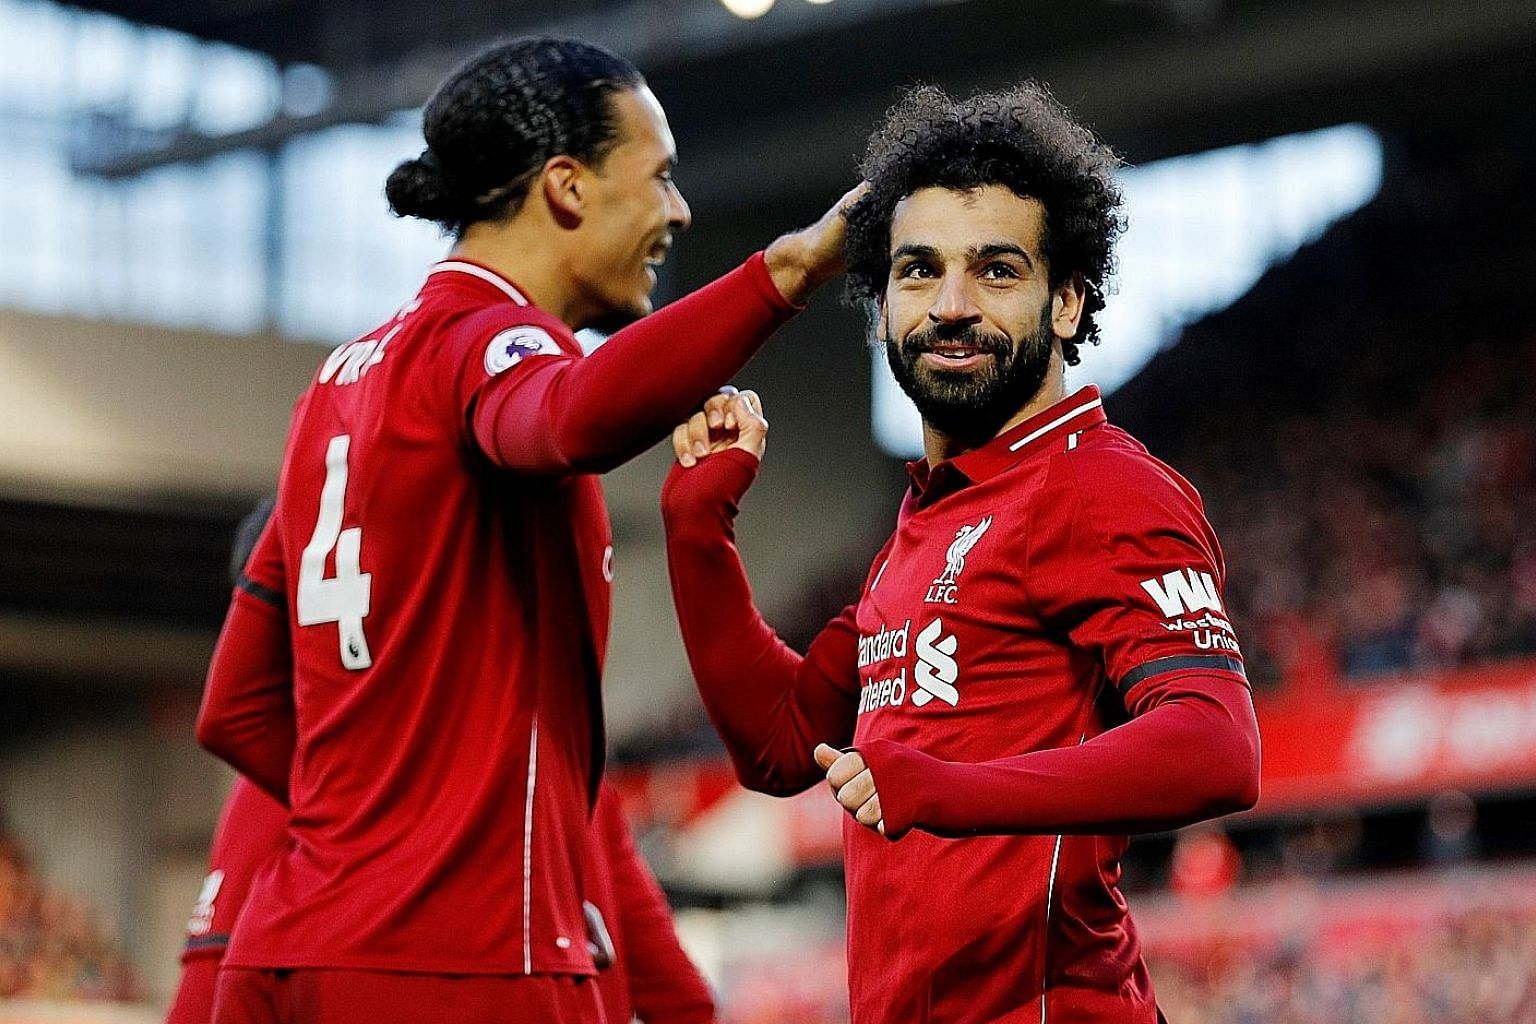 Leading striker Mohamed Salah (right) and dependable defender Virgil van Dijk will be the key men who can end Liverpool's league title drought this season.